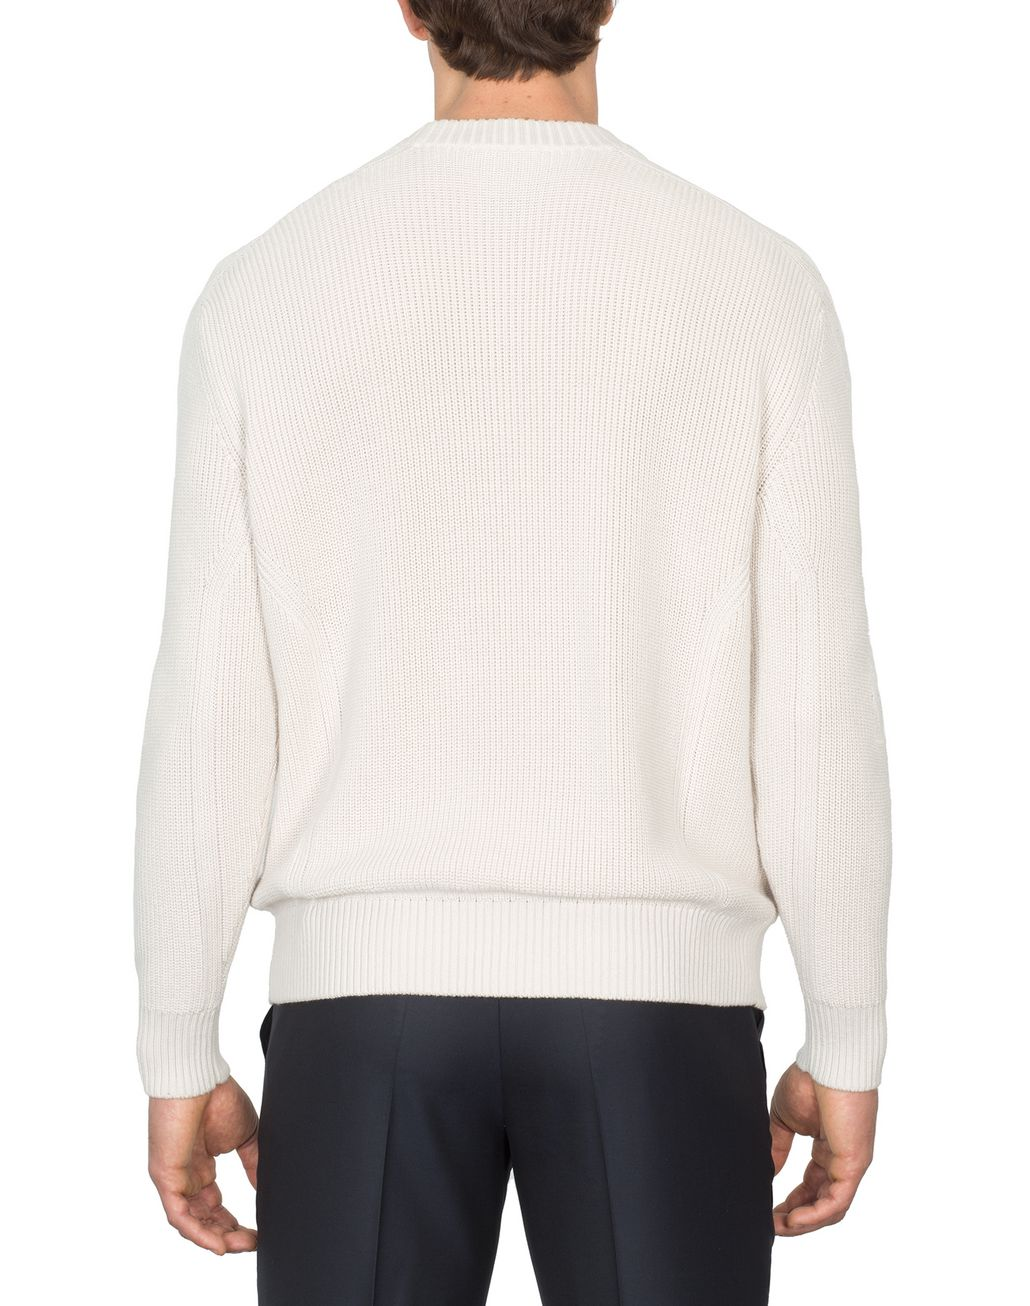 BRIONI Ivory Oversized Fit Sweater Knitwear Man d